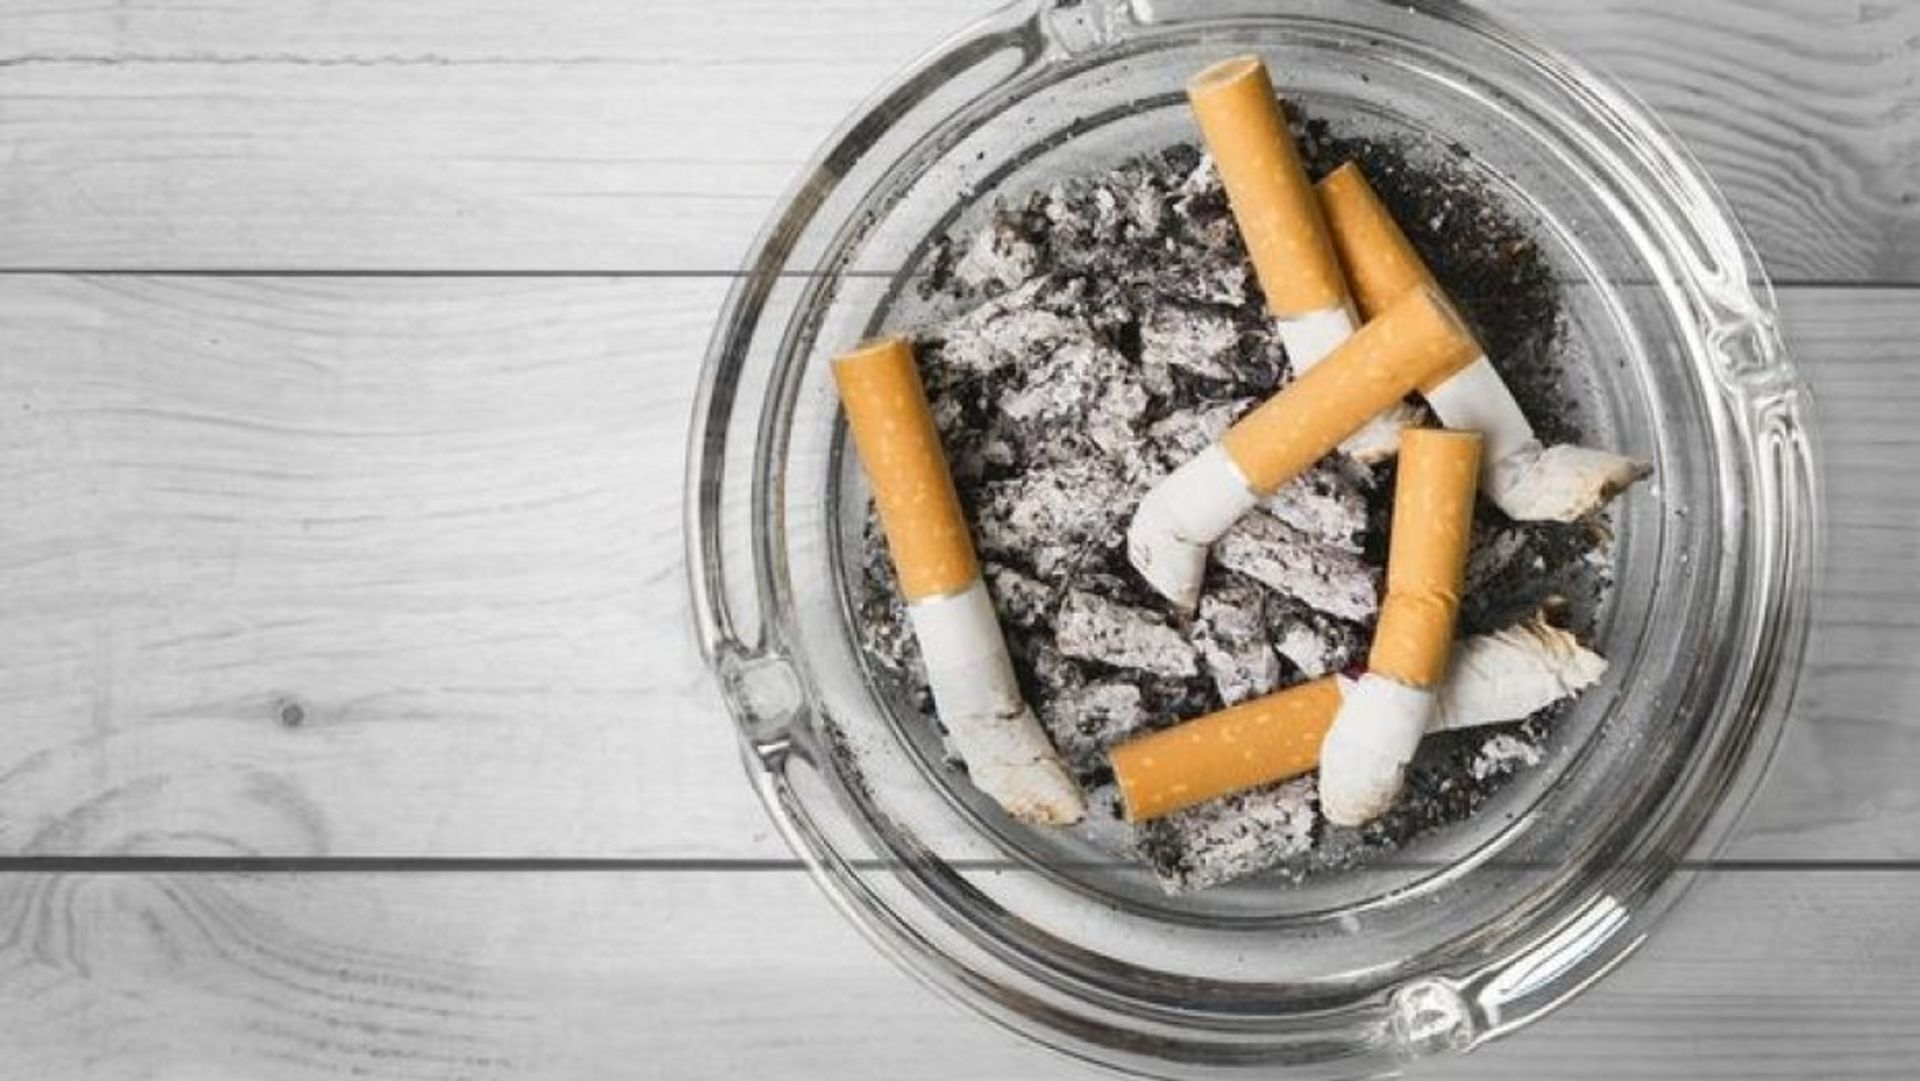 Should you buy a smoker's house? How to get rid of cigarette smells